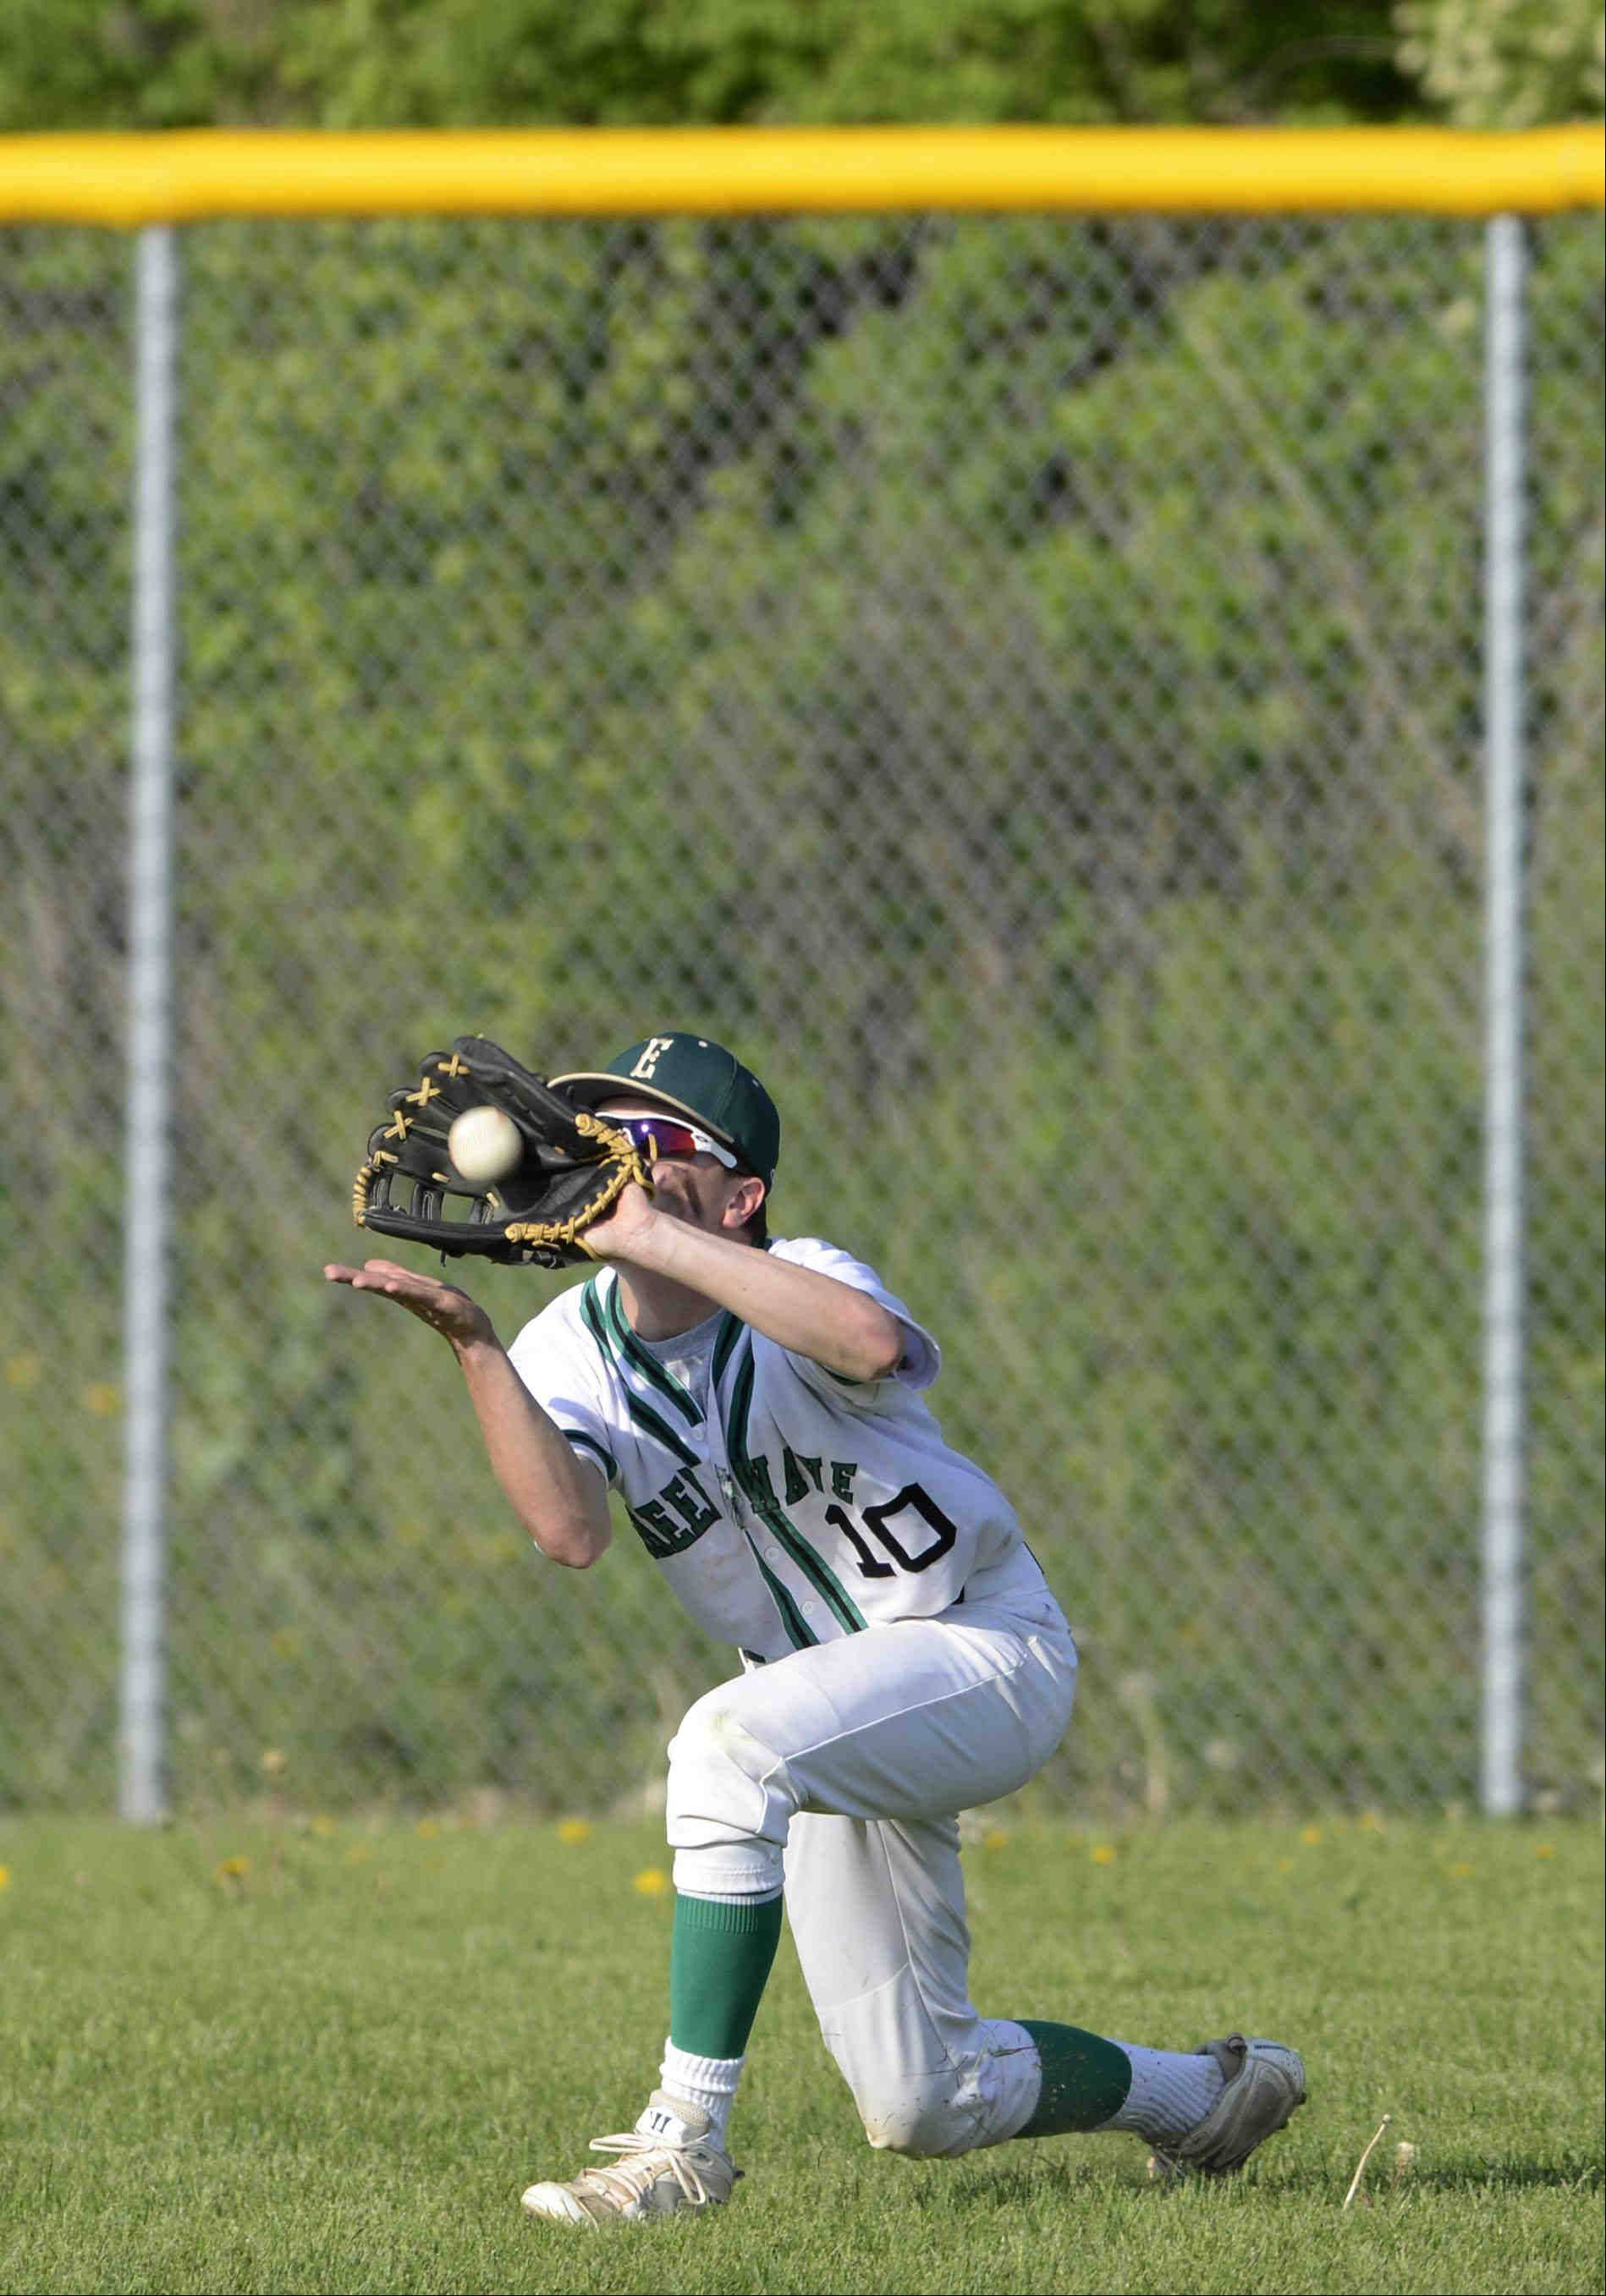 St. Edward right fielder Kevin Lamp secures a line drive from Aurora Christian's Ian Livingston for the first out of the last inning Thursday in the 2A Regional game in Elgin.